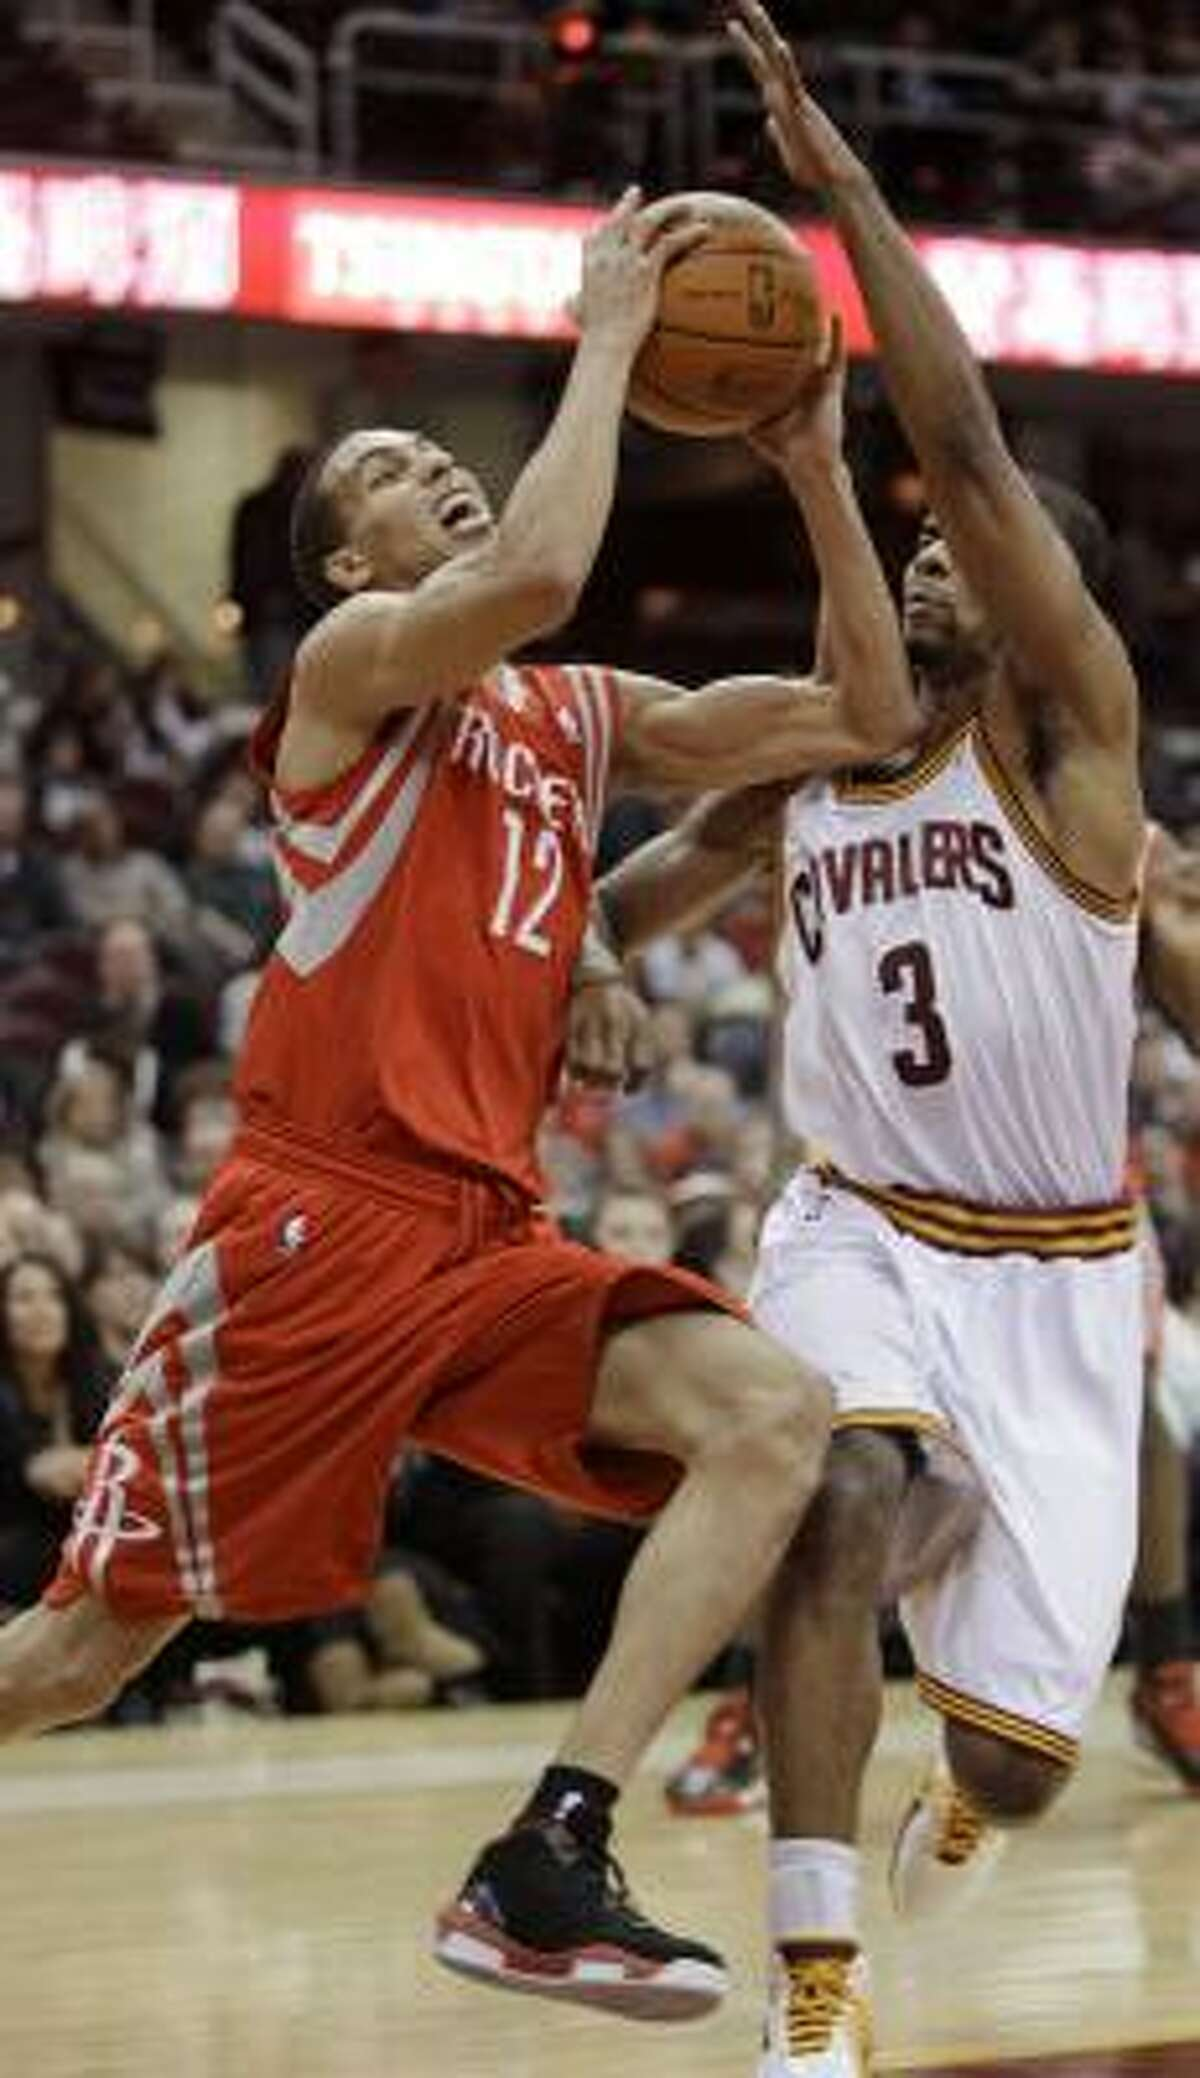 Rockets guard Kevin Martin (12) finished with 30 points, match teammate Chase Budinger for the game high.